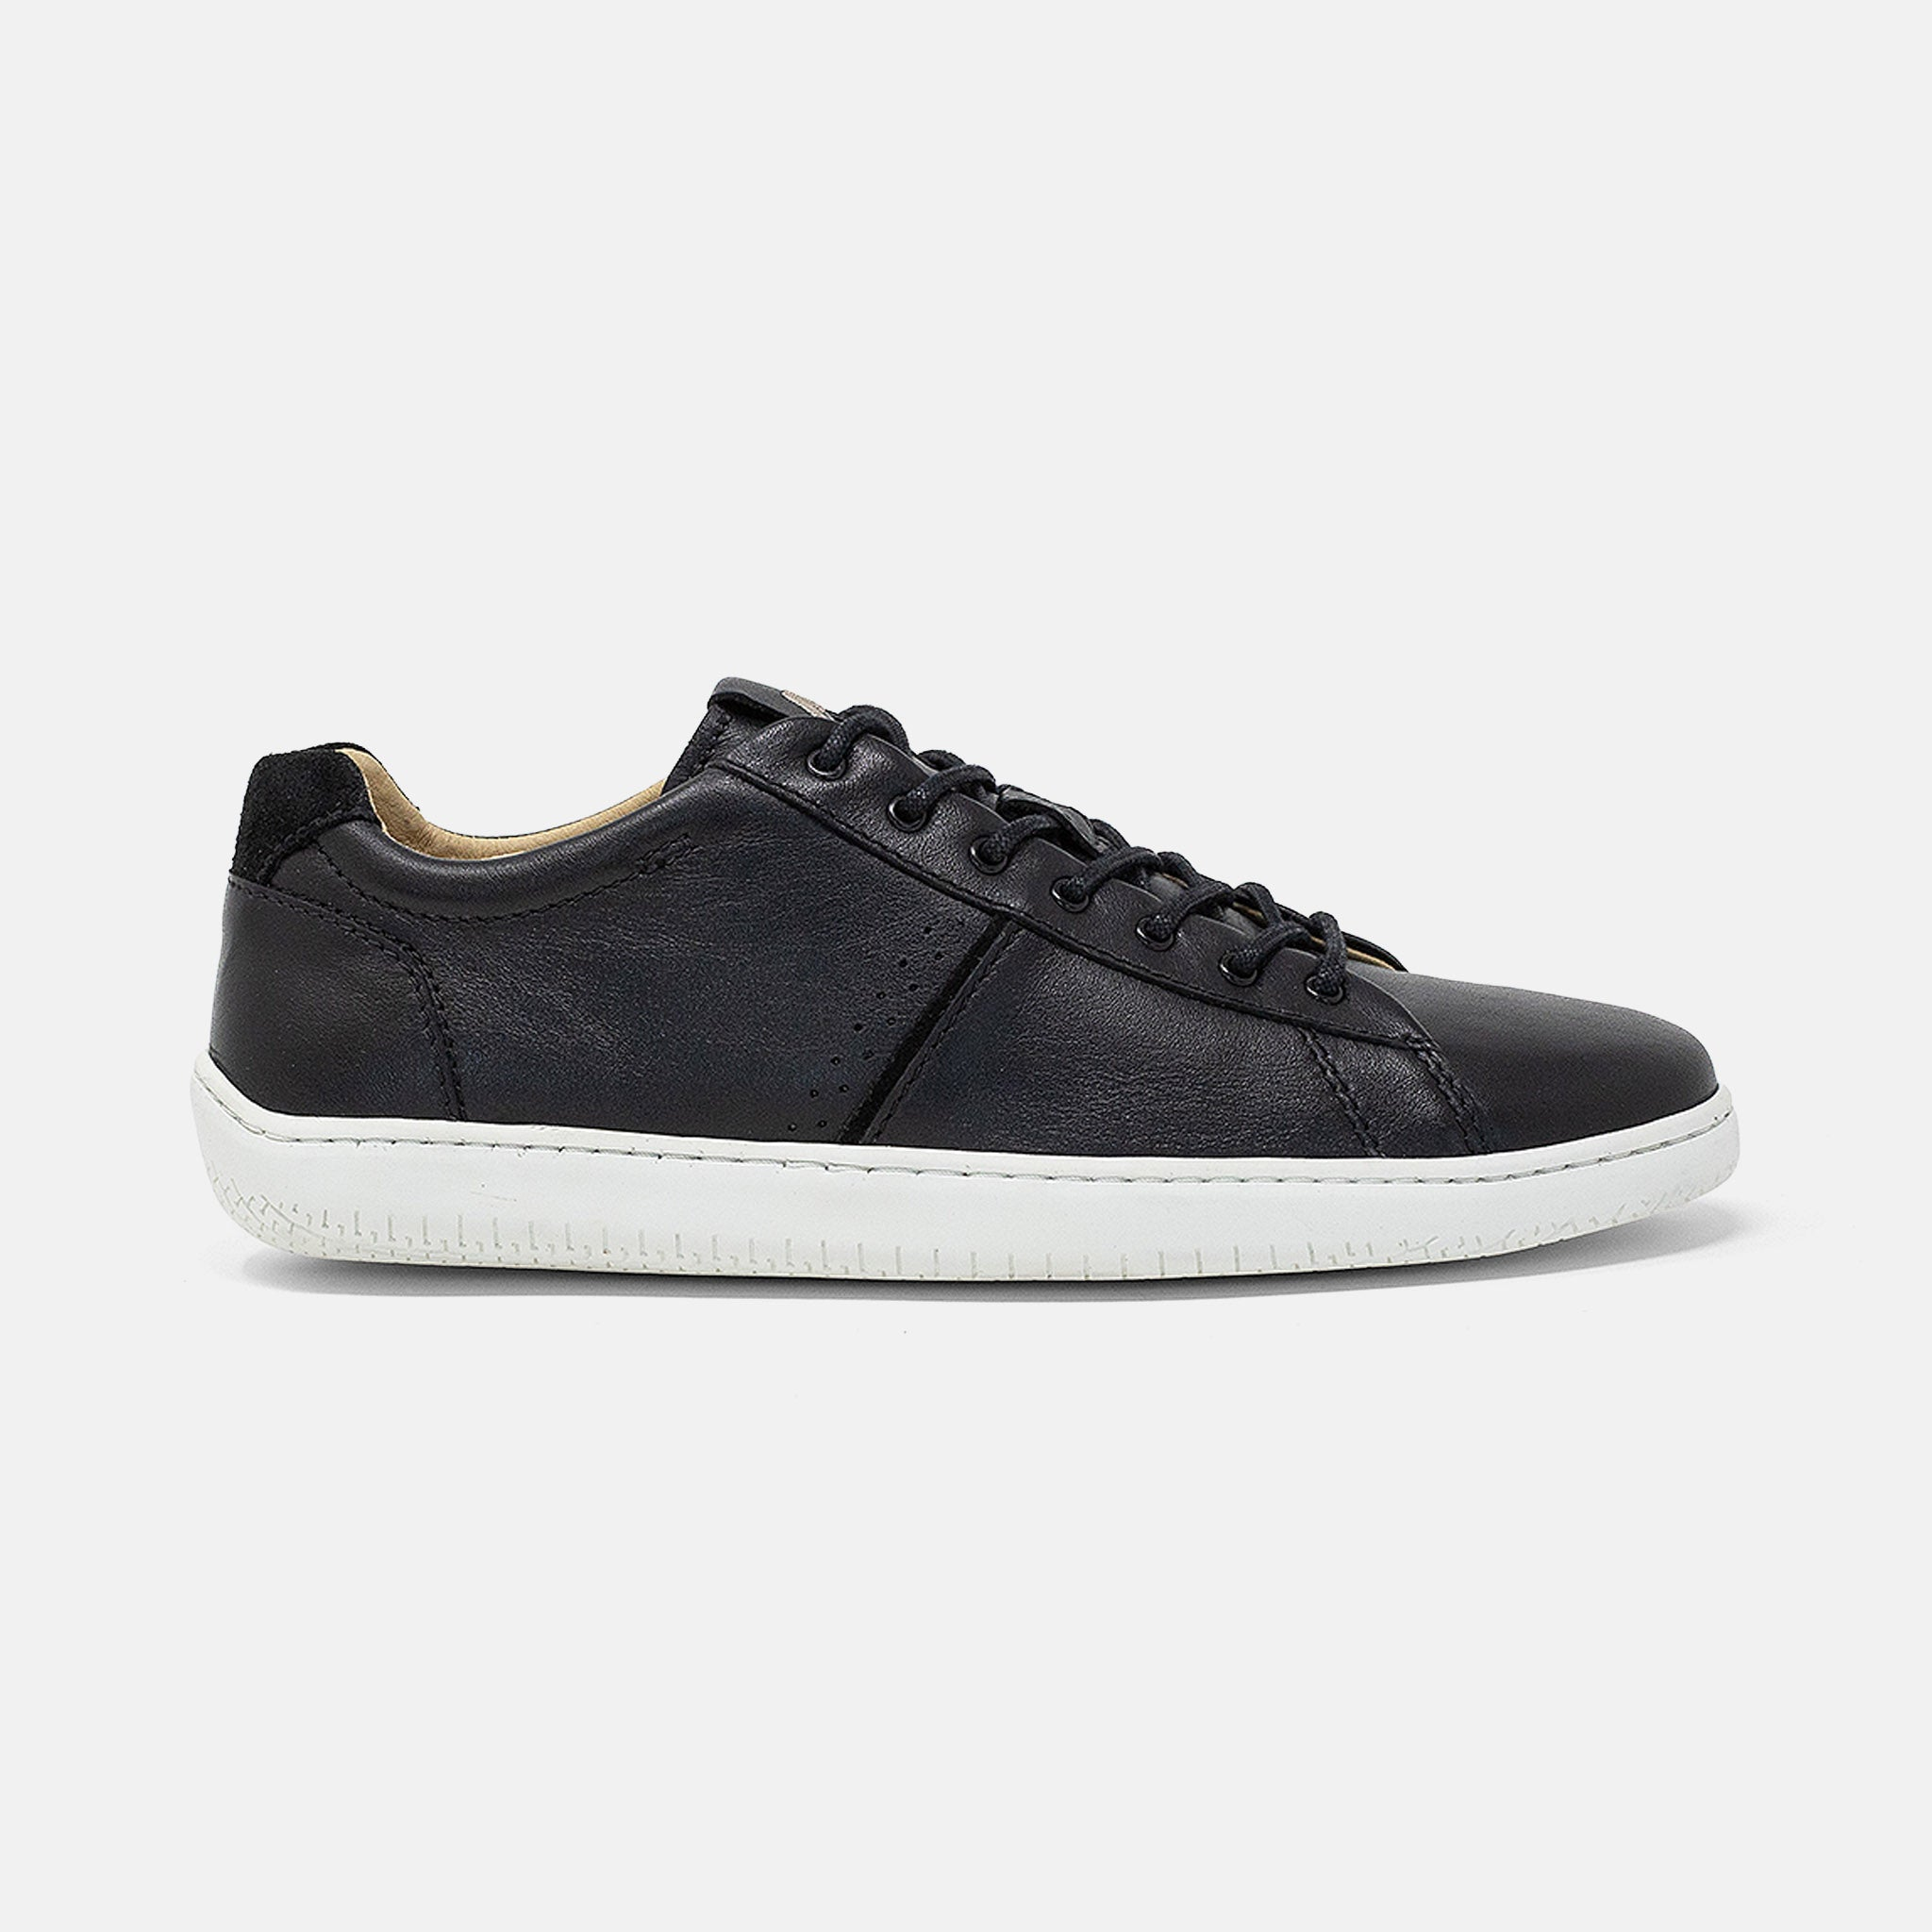 Women's black leather Spark sneaker, with white cupsole, lateral view